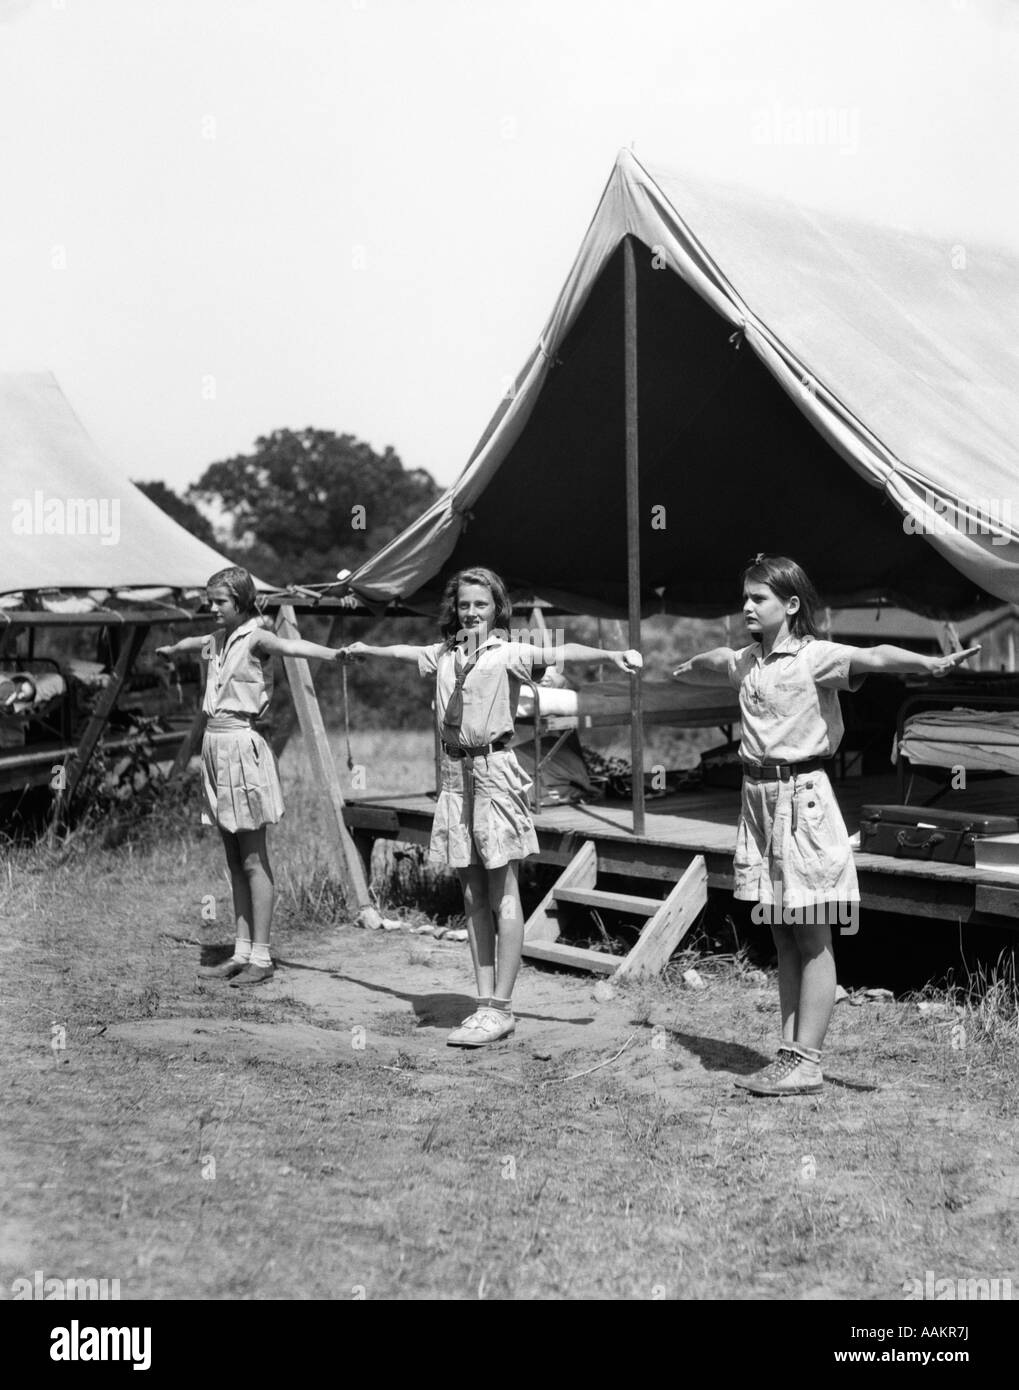 1930s THREE TEEN GIRLS DOING EXERCISE IN A ROW WITH ARMS EXTENDED BY TENT SUMMER CAMP - Stock Image